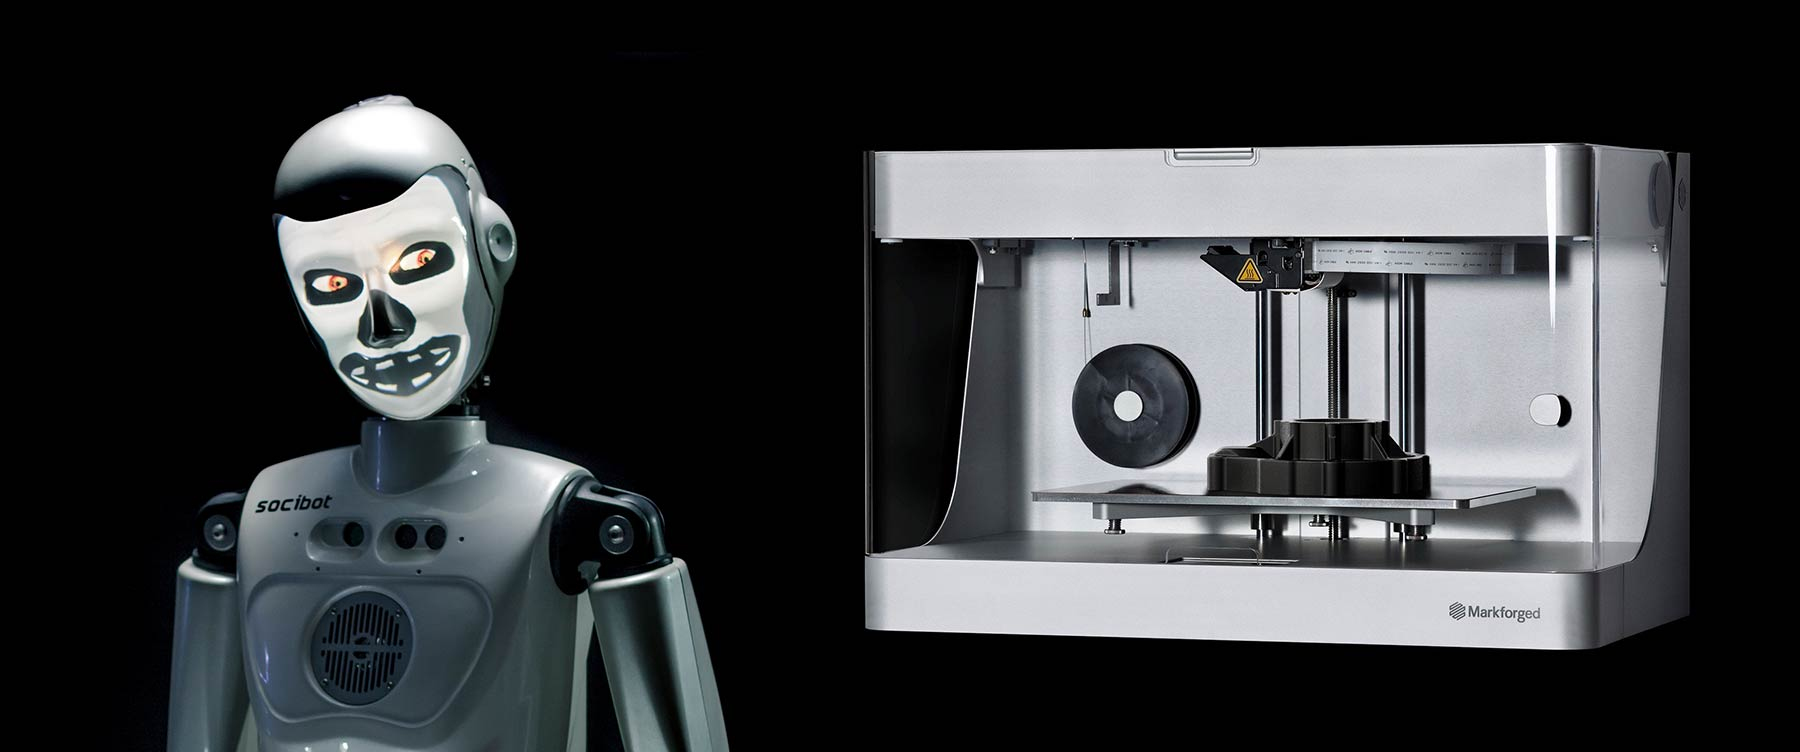 Socibot Robot Markforged 3D Printing - Engineered Arts